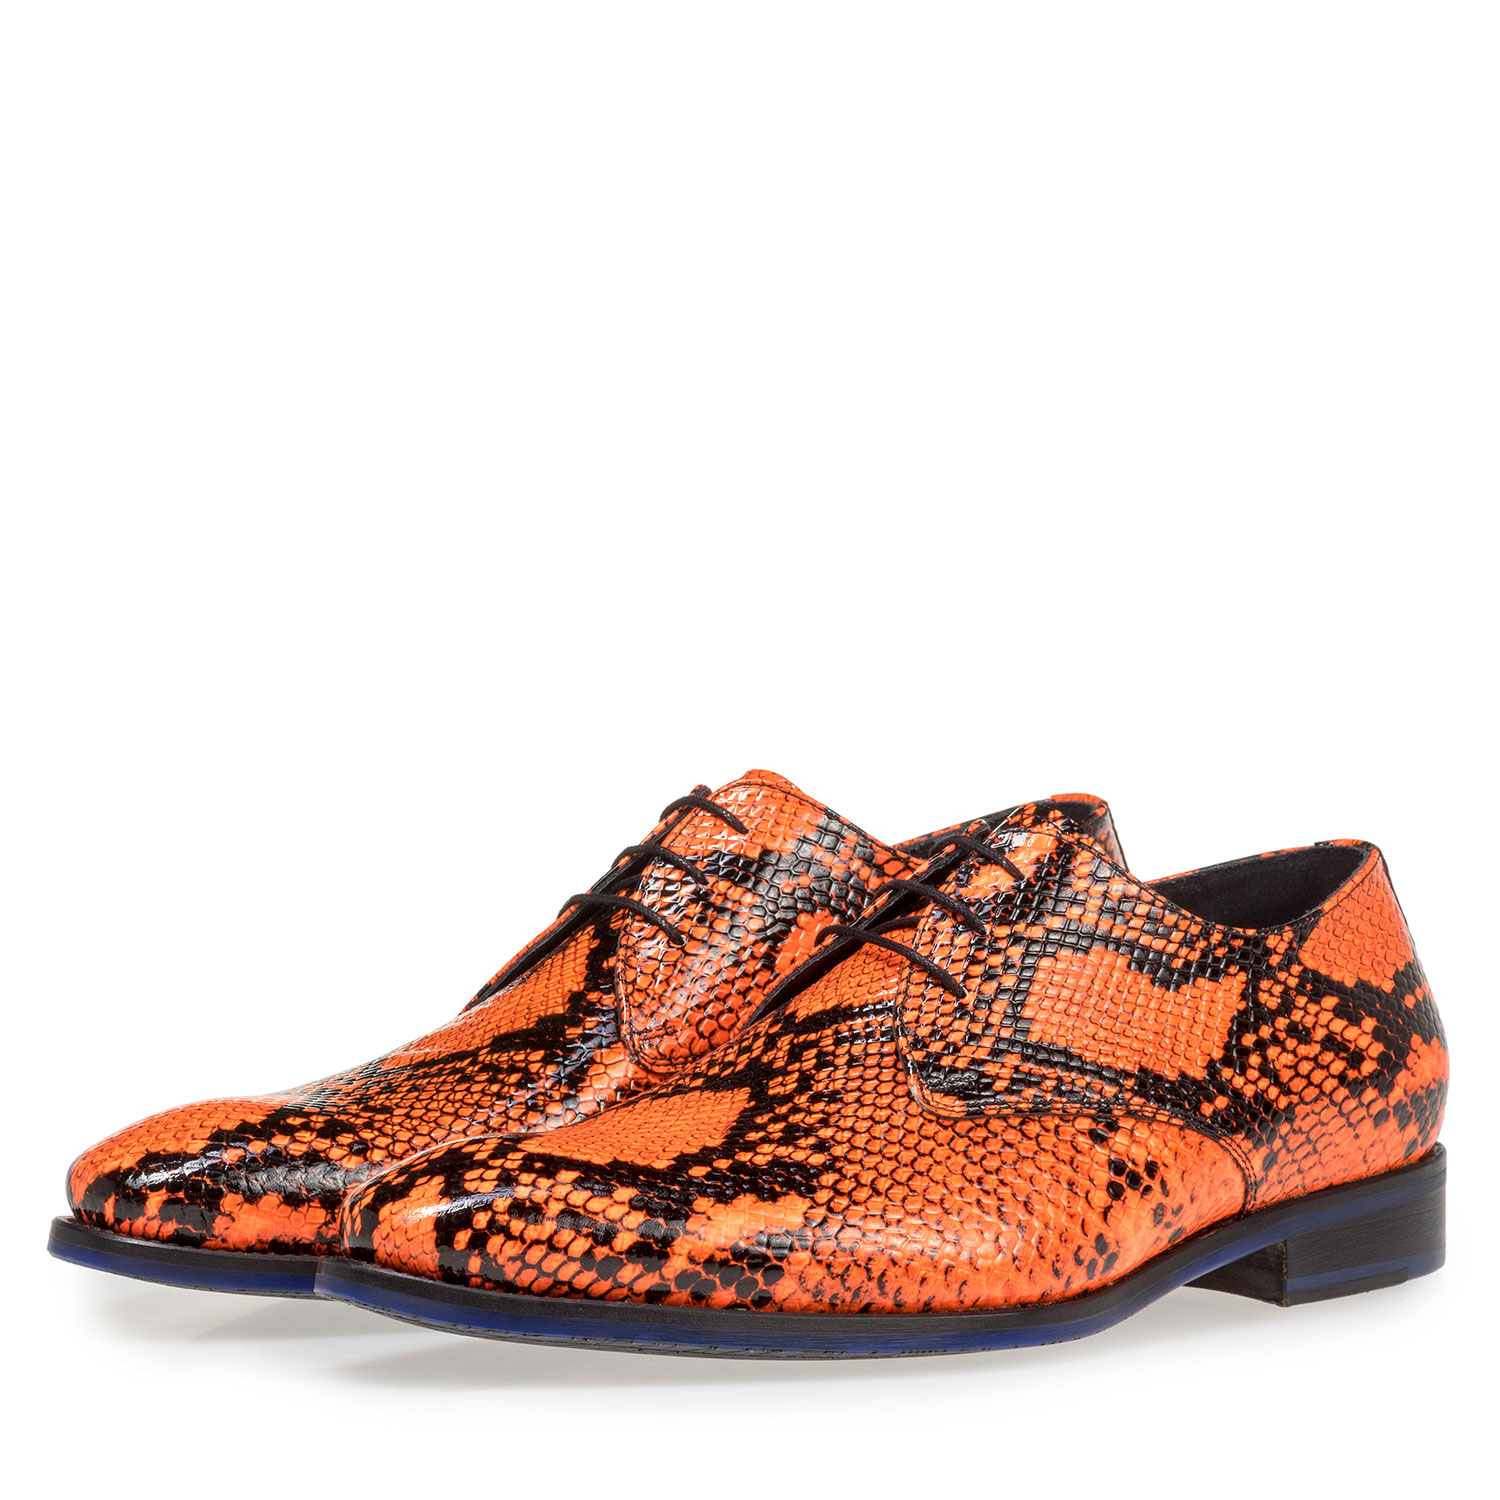 18124/08 - Premium fluorescent orange lace shoe with print